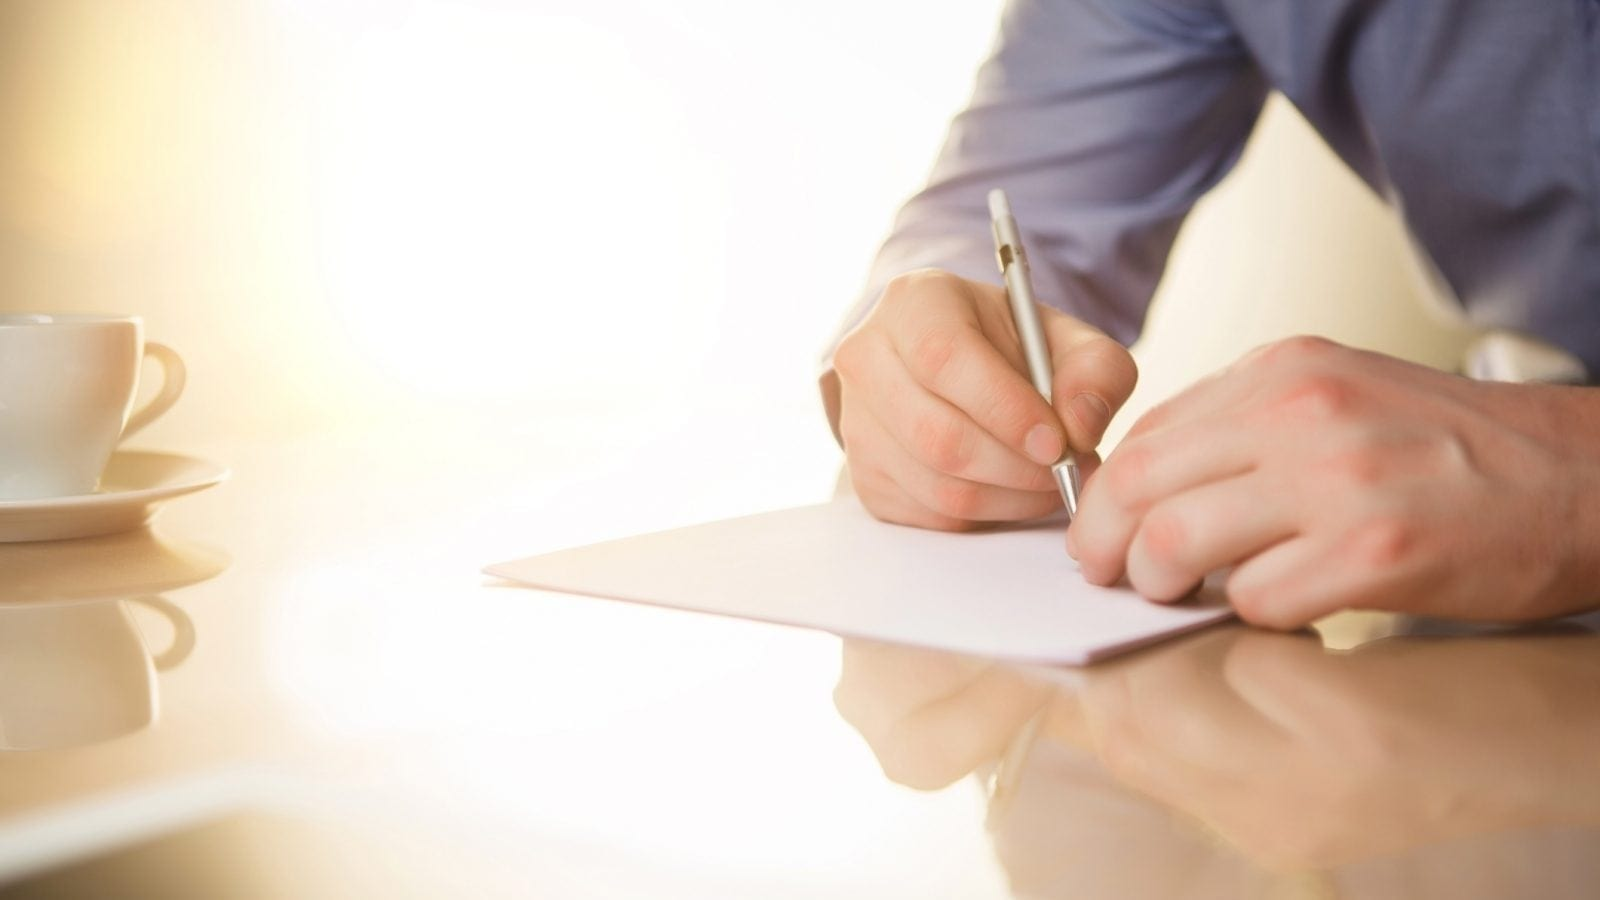 Male Signing Document Stock Photo